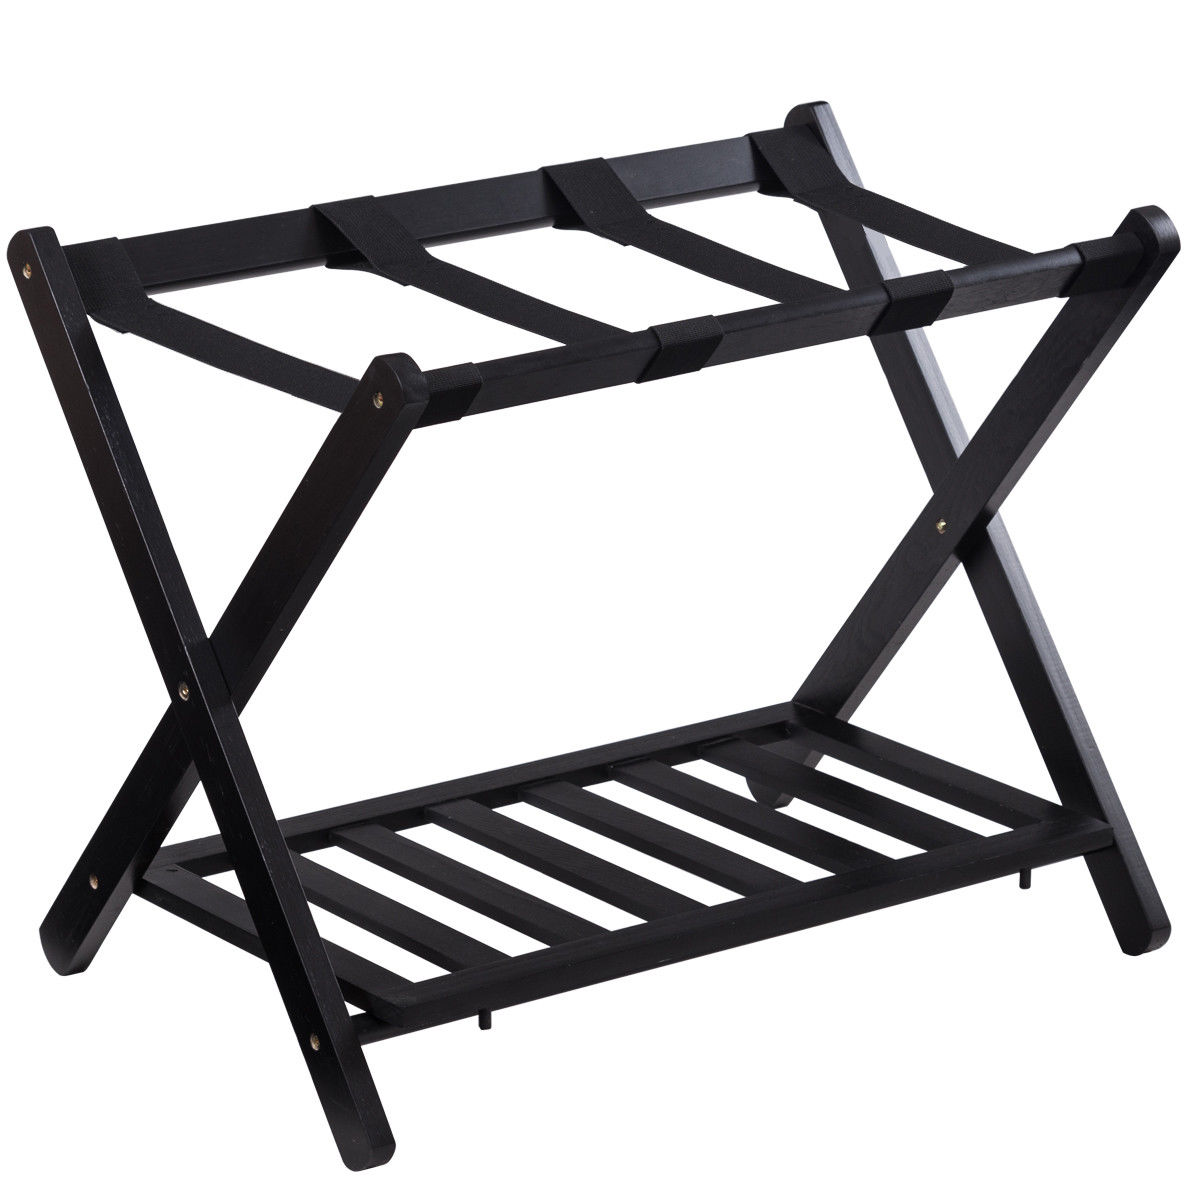 A chrome luggage rack from Lancaster Table & Seating is the perfect place for guests to store their luggage and travel bags. Lancaster Table & Seating's chrome luggage rack can hold several different suitcases or pieces of luggage at your hotel, resort, or convention center.5/5(8).